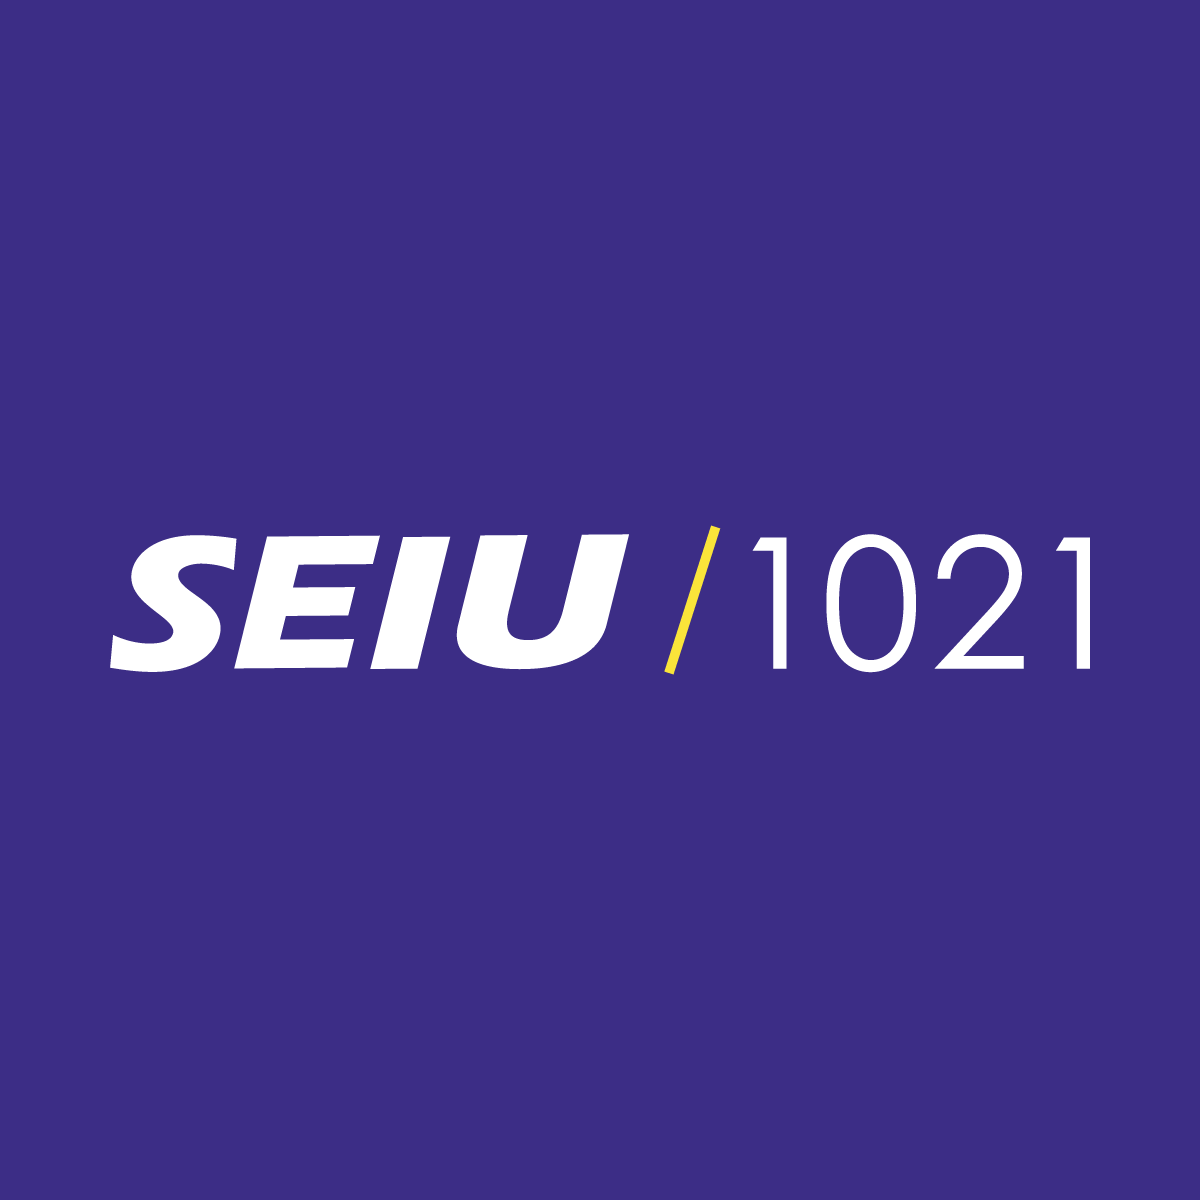 SEIU 1021 - Service Employees International Union